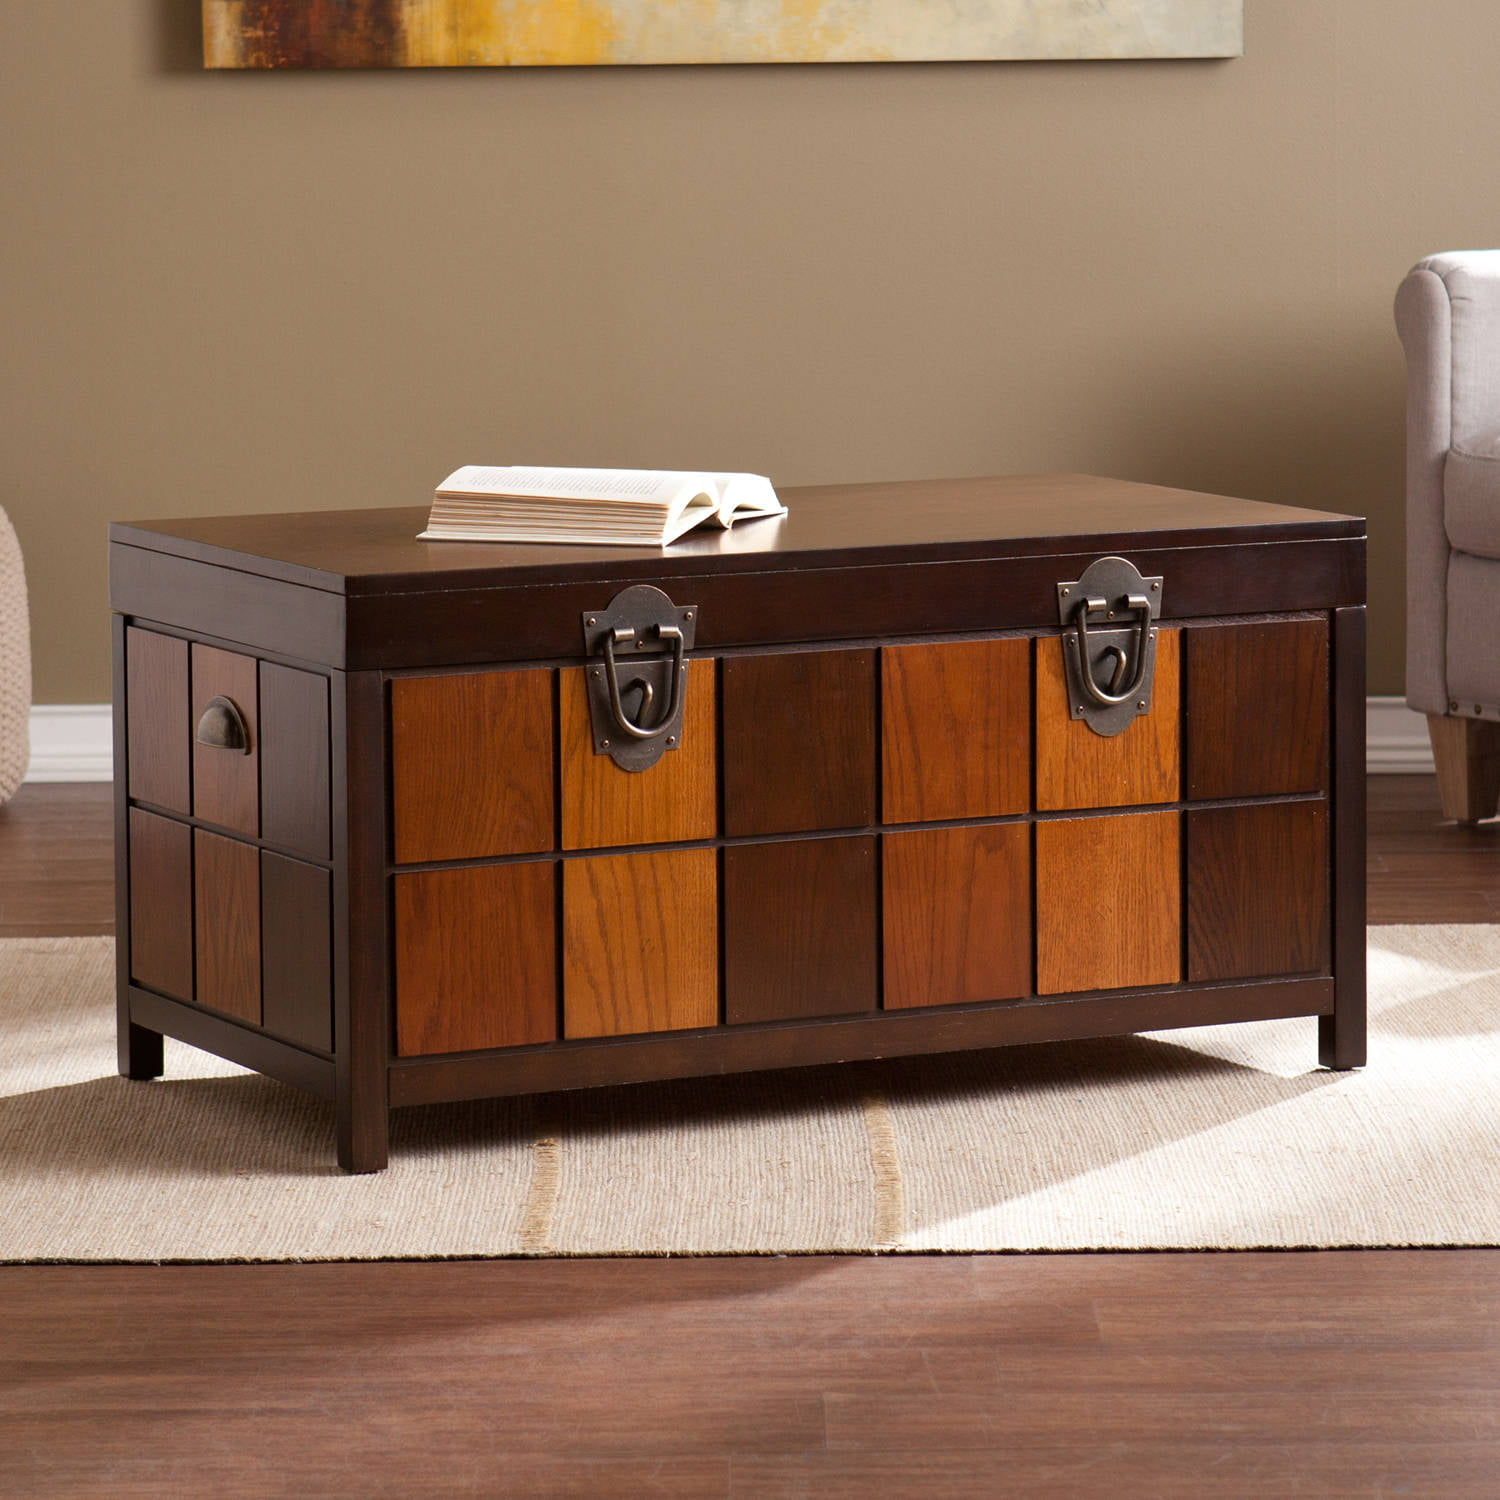 Southern Enterprises Hartford Trunk Cocktail Table, Multi-Tonal by Southern Enterprises